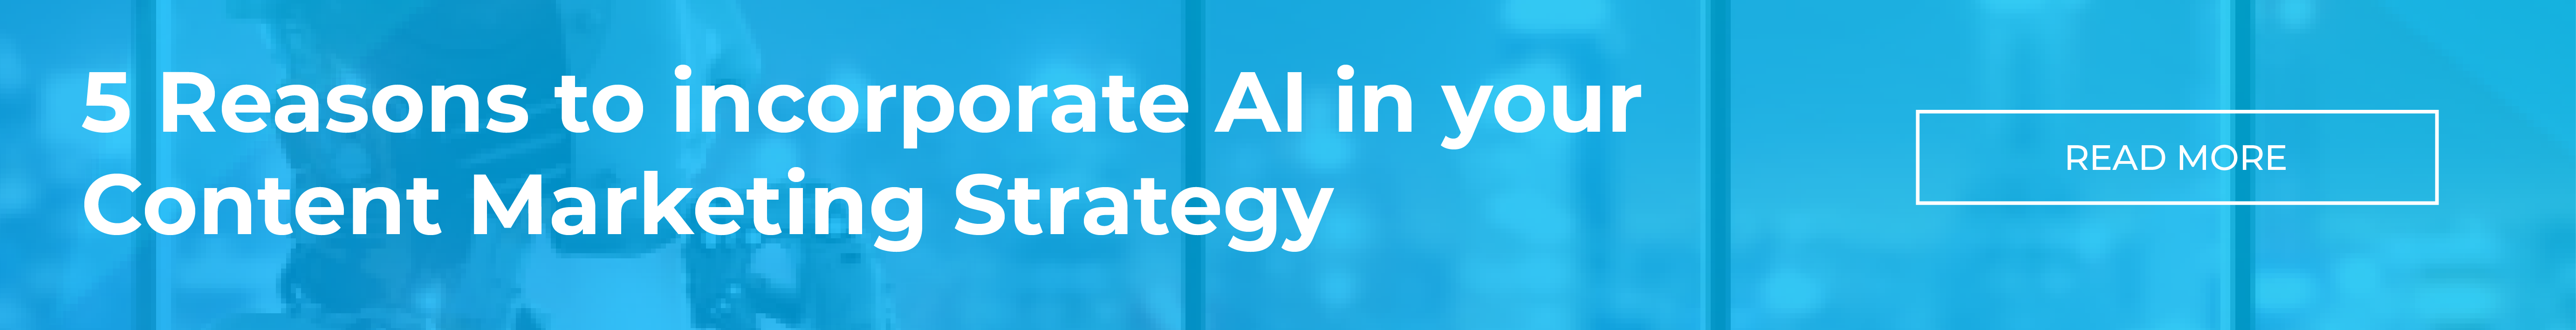 5 Reasons to incorporate AI in your Content Marketing Strategy